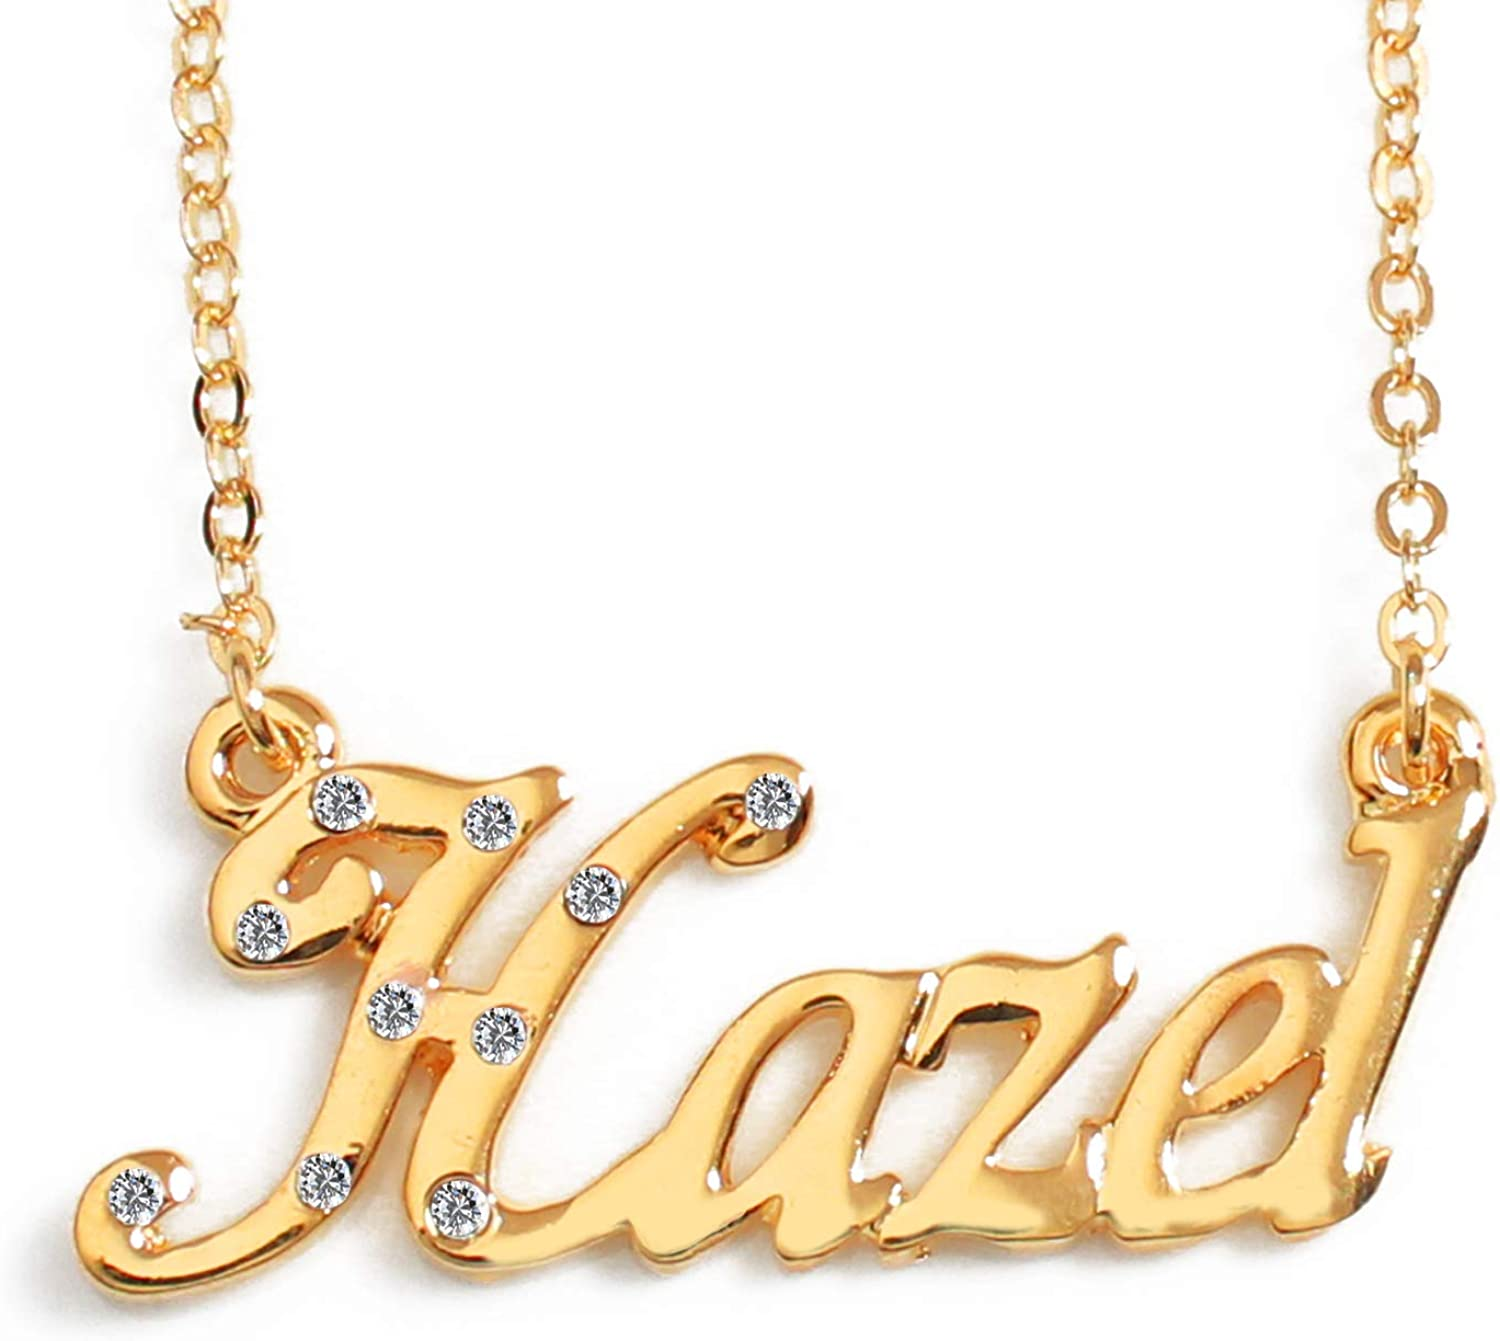 18ct Gold Plated Zacria Jordan Custom Name Necklace Personalized